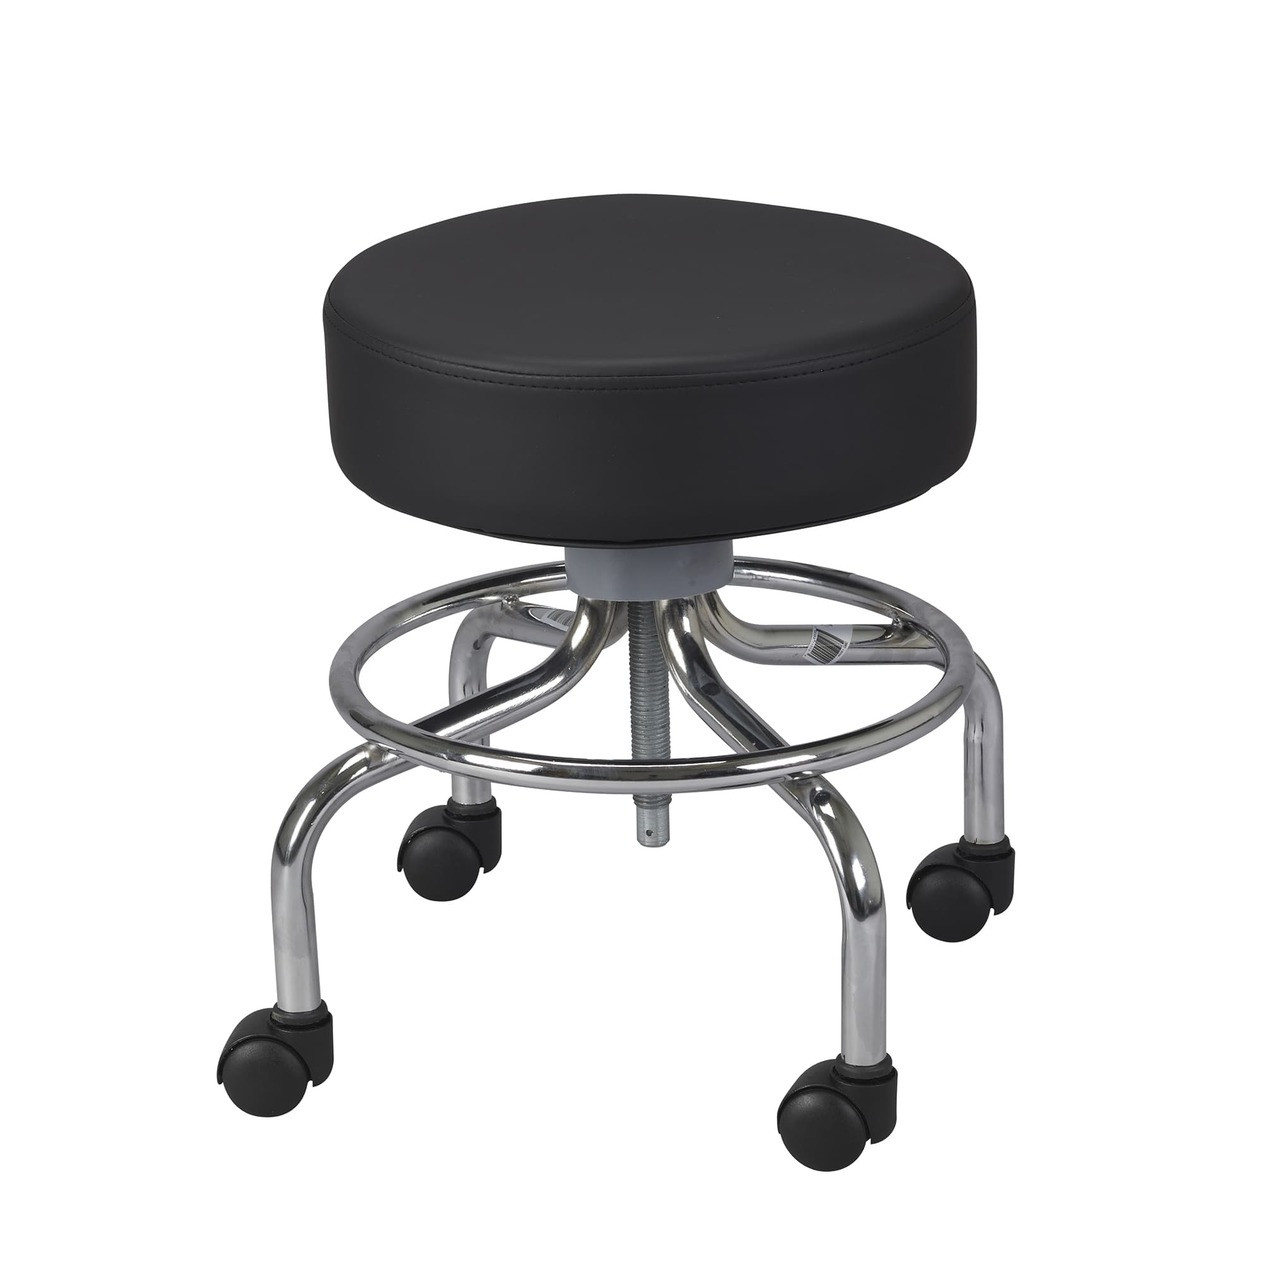 Brilliant Drive Medical Revolving Adjustable Height Stool Onthecornerstone Fun Painted Chair Ideas Images Onthecornerstoneorg